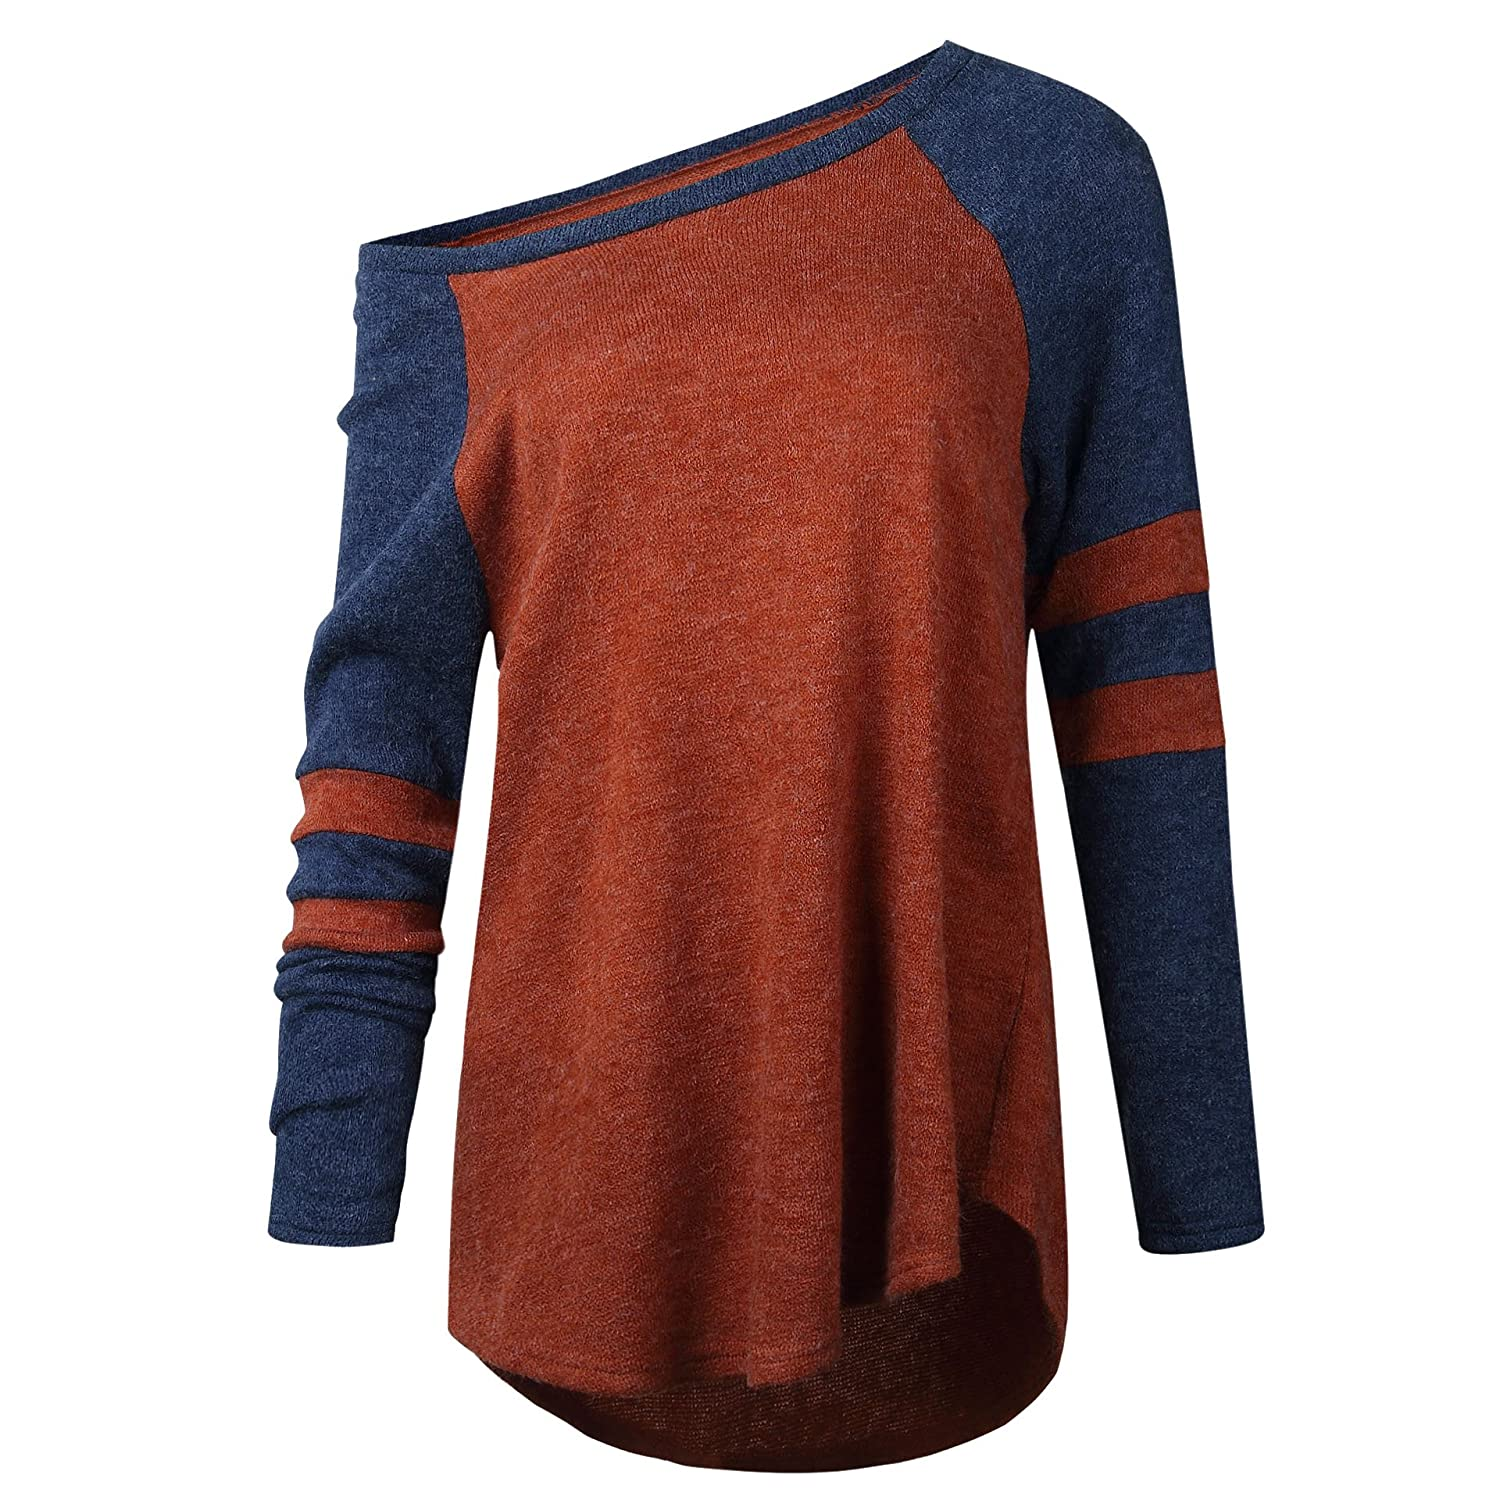 free shipping Jerseys de Punto Mujer Sueter Tejido Señora Suéter Mujeres  Jersey Oversize Largo Sweaters Sueteres 337c25a37e0c